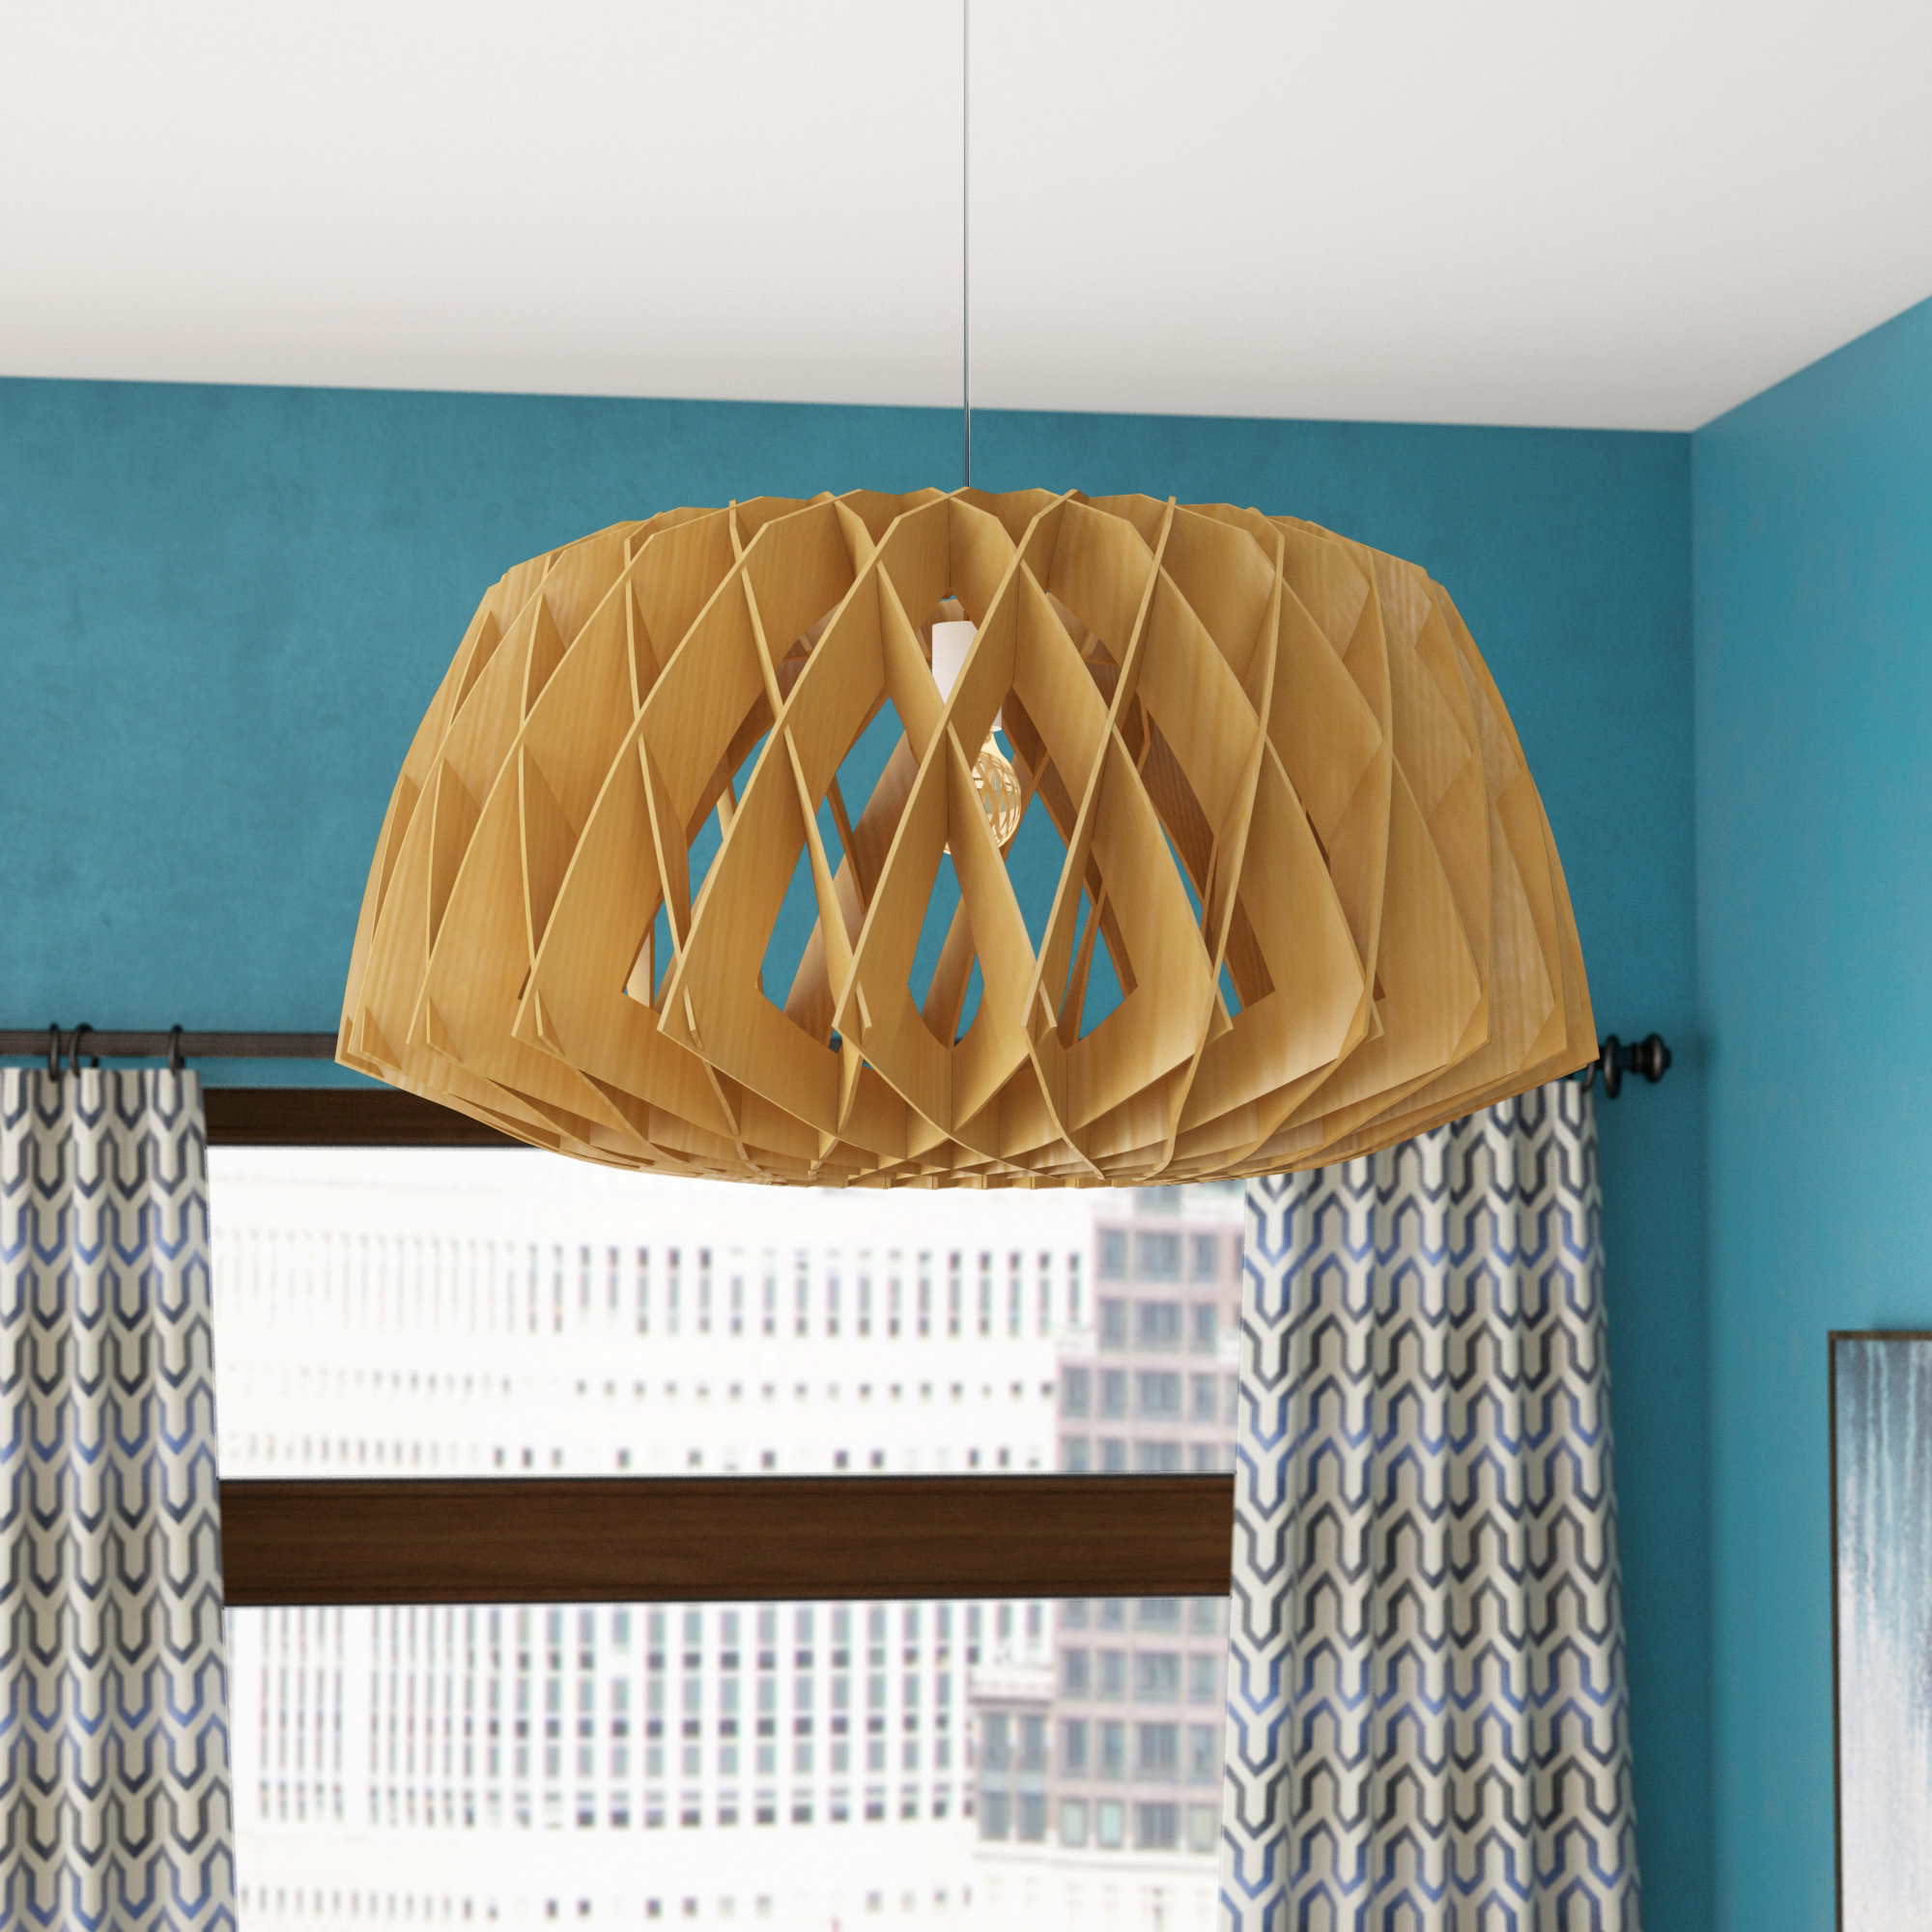 Melora 1 Light Single Geometric Pendants Pertaining To Well Known Melora 1 Light Single Geometric Pendant (Gallery 1 of 20)